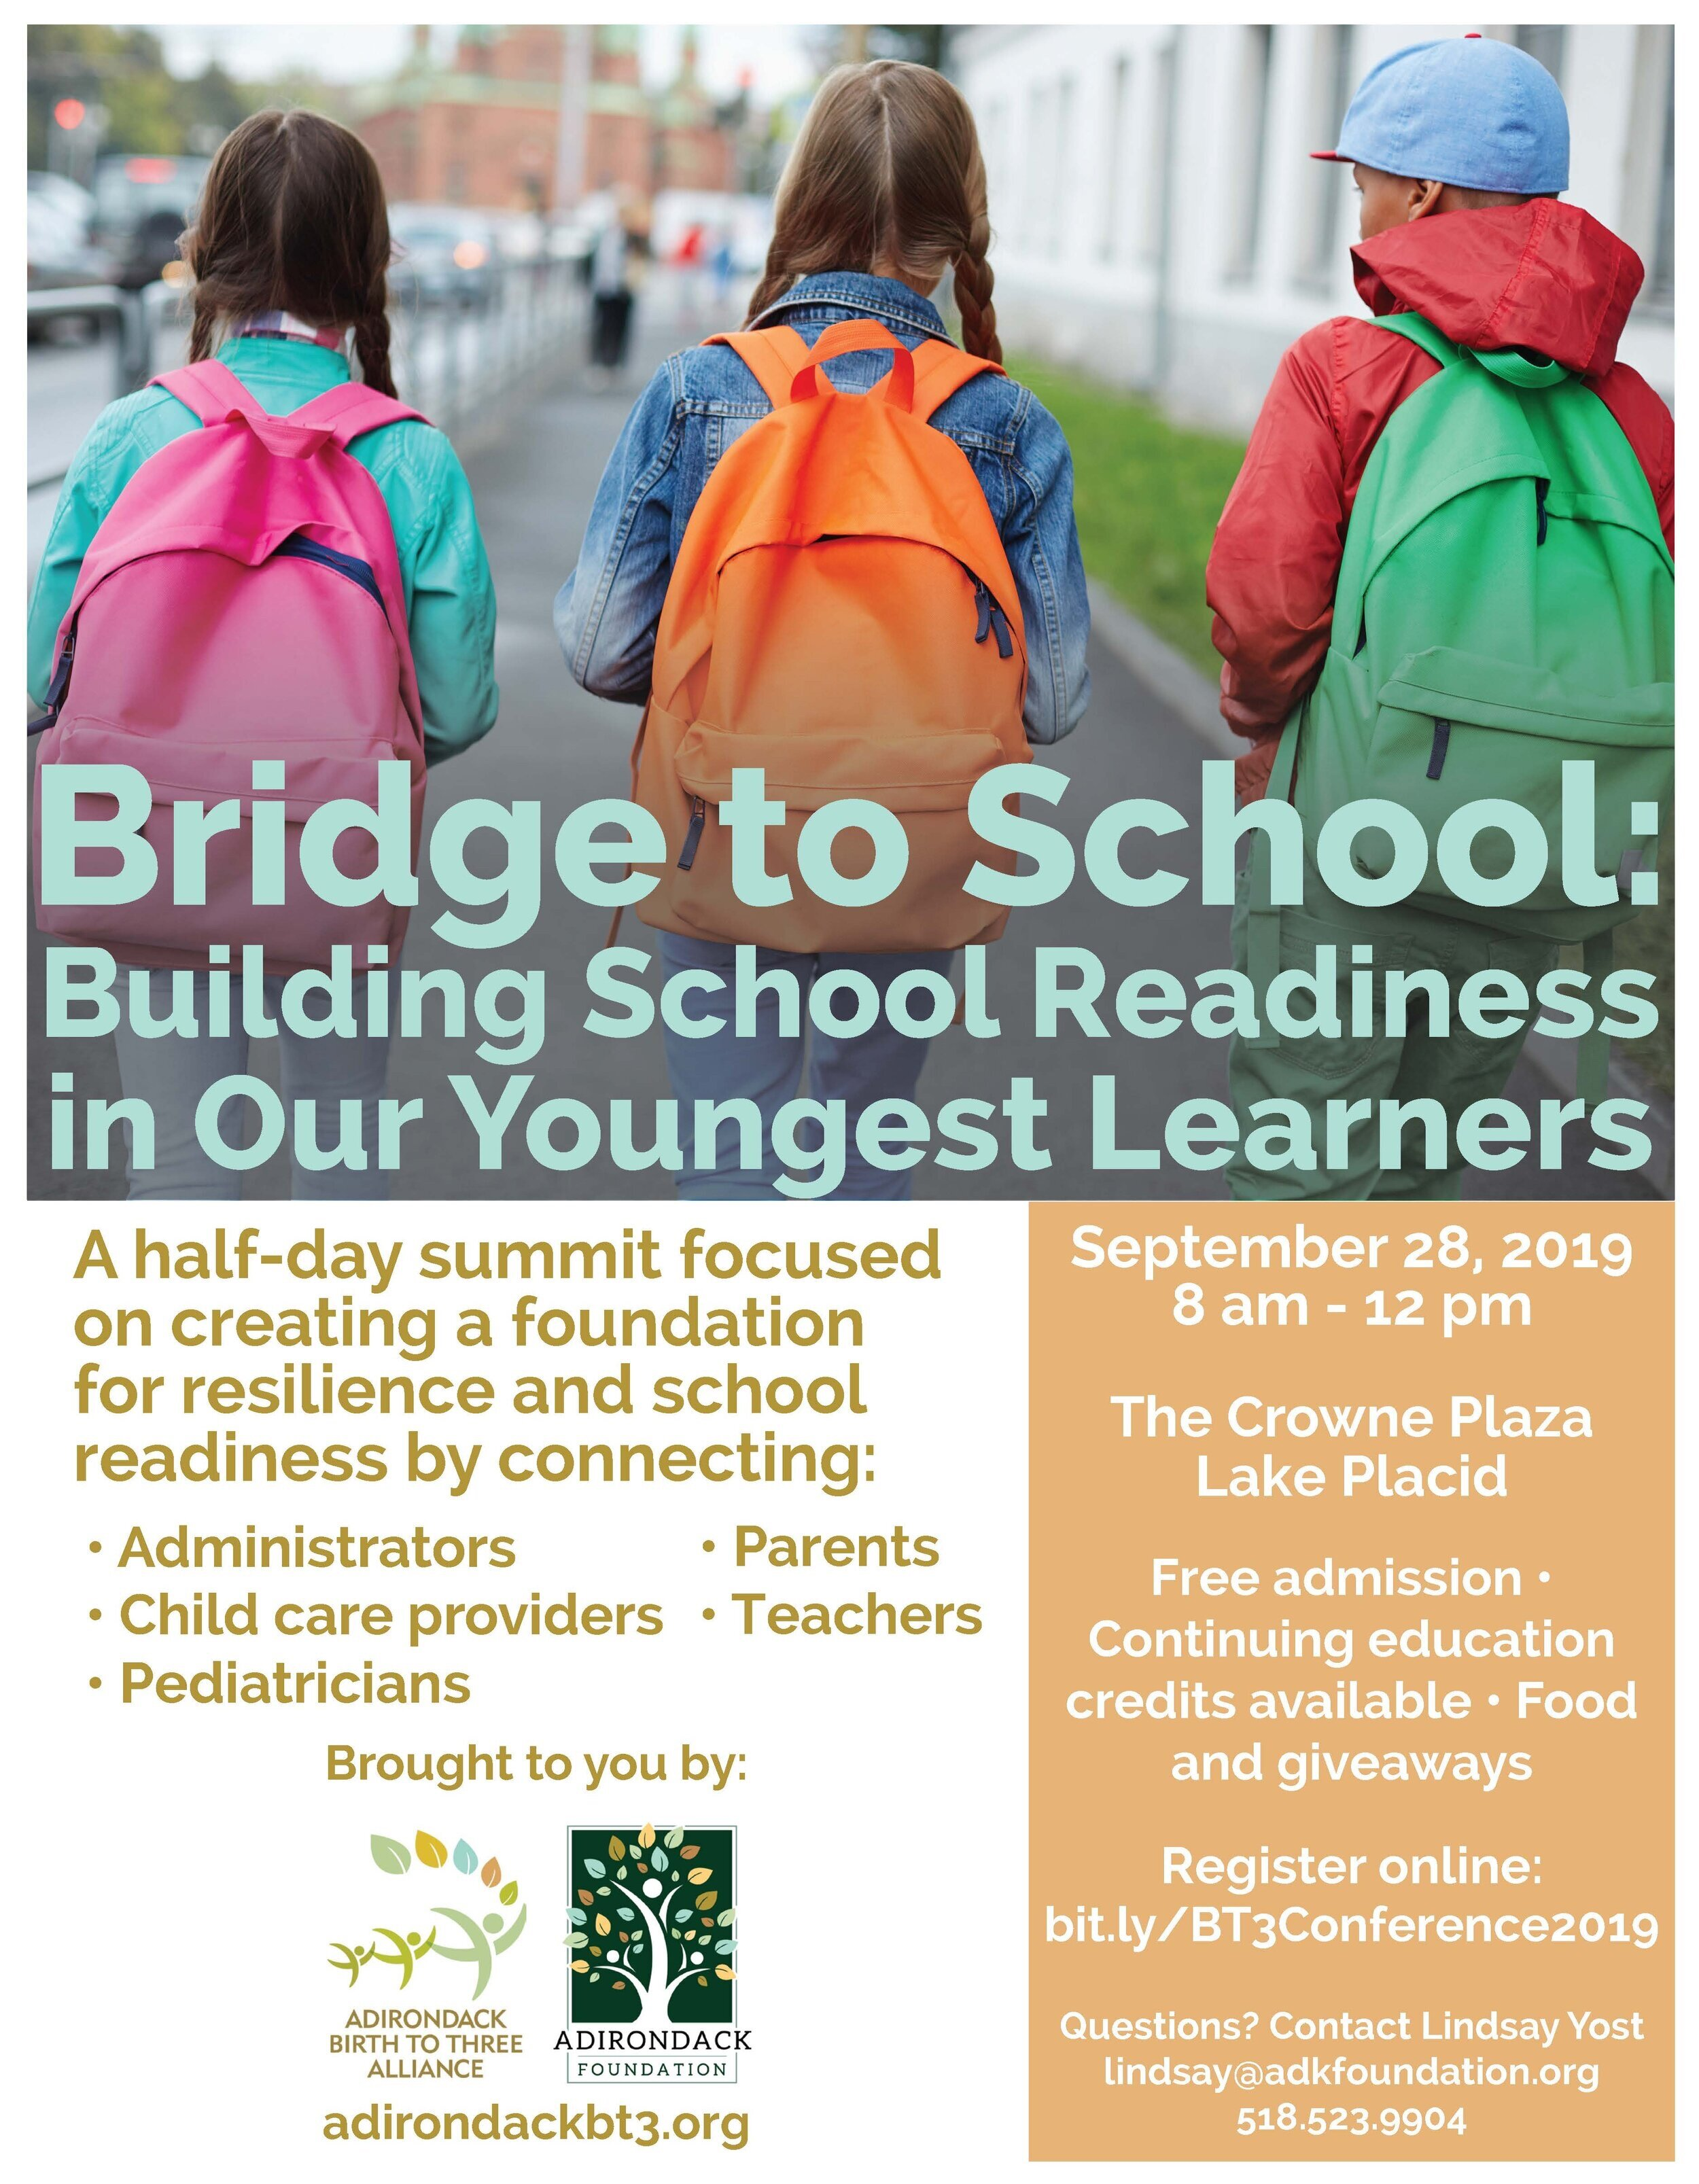 9/28/19: Bridge to School: Building School Readiness in Our Youngest Learners - On September 28th, The Adirondack Birth to Three Alliance will host a summit featuring keynote speaker Rachel Wagner! Admission is free and space is limited to sign up today! Click the image to register!